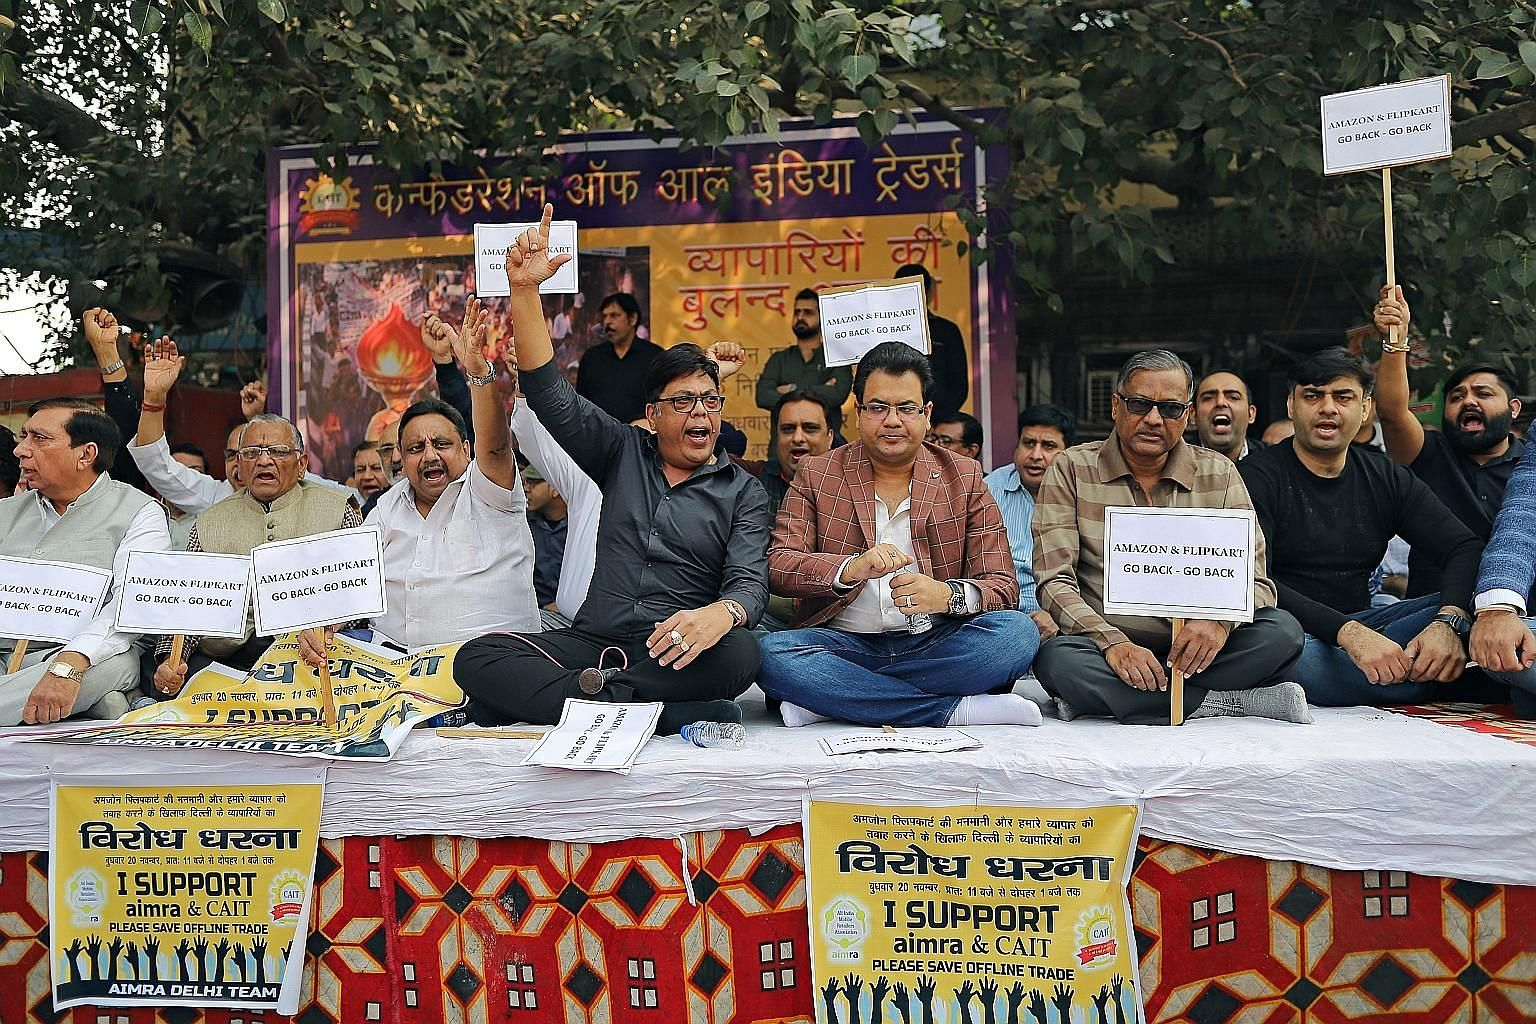 Indian merchants holding placards and shouting slogans during a sit-in protest against Amazon and Walmart last month at Sadar Bazaar, the largest wholesale bazaar in New Delhi. This came even as the government in October announced an investigation in